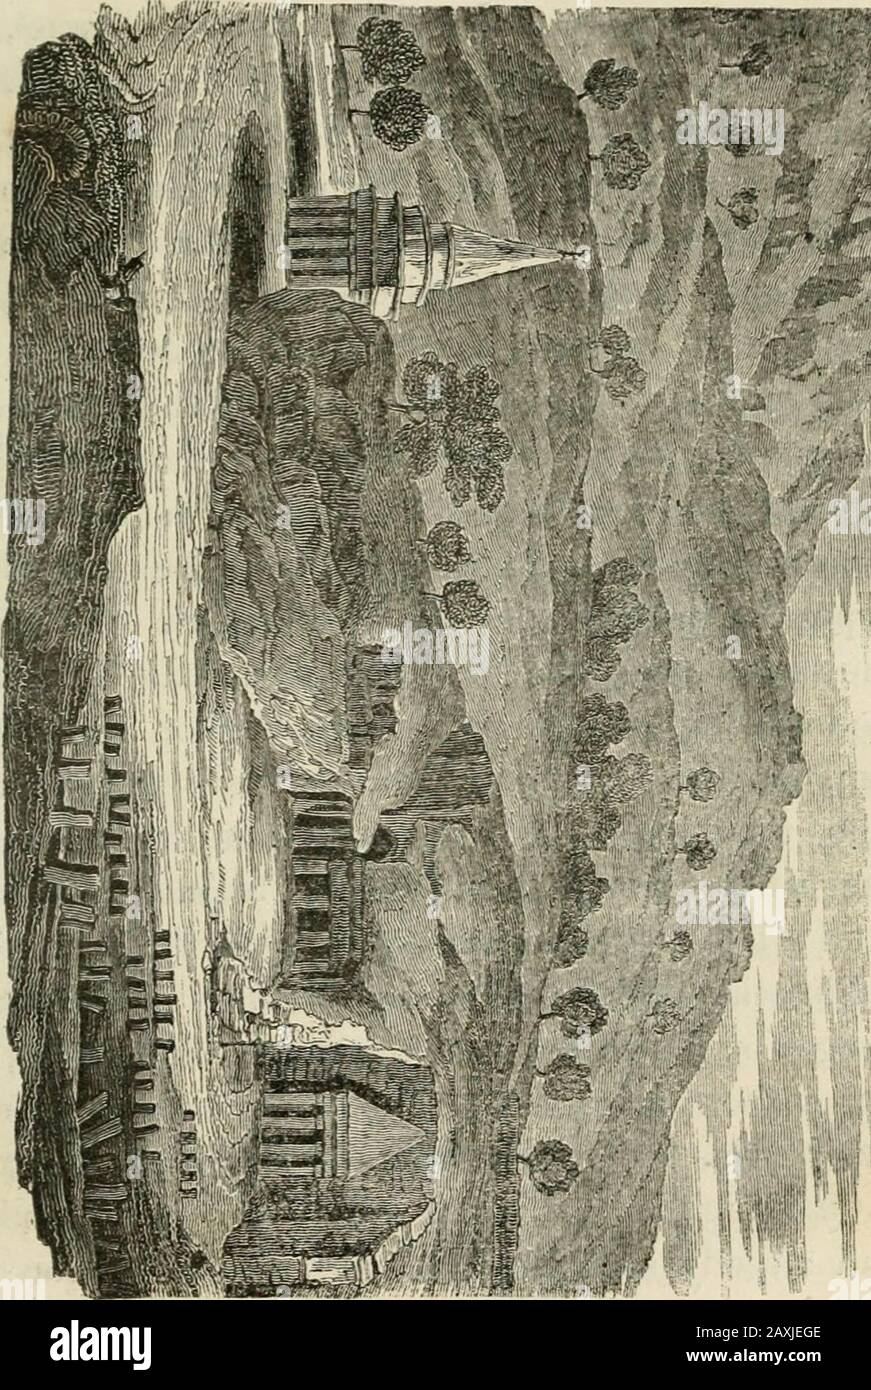 Travels in Palestine, through the countries of Bashan and Cilead, east of the River Jordan; including a visit to the cities of Geraza and Gamala, in the Decapolis . period of our visit,perfectly dry. This confined space is nearlycovered witli the grave-stones of Jews, with in-scriptions in Hebrew characters ; as it is esteem-ed among them one of the greatest blessings toend their days at Jerusalem, and to obtain aburial in the valley of Jehoshaphat. For thispurpose, the more dev^out among them comefrom distant parts of the world, and it is certainthat immense prices are paid by them for thepri Stock Photo